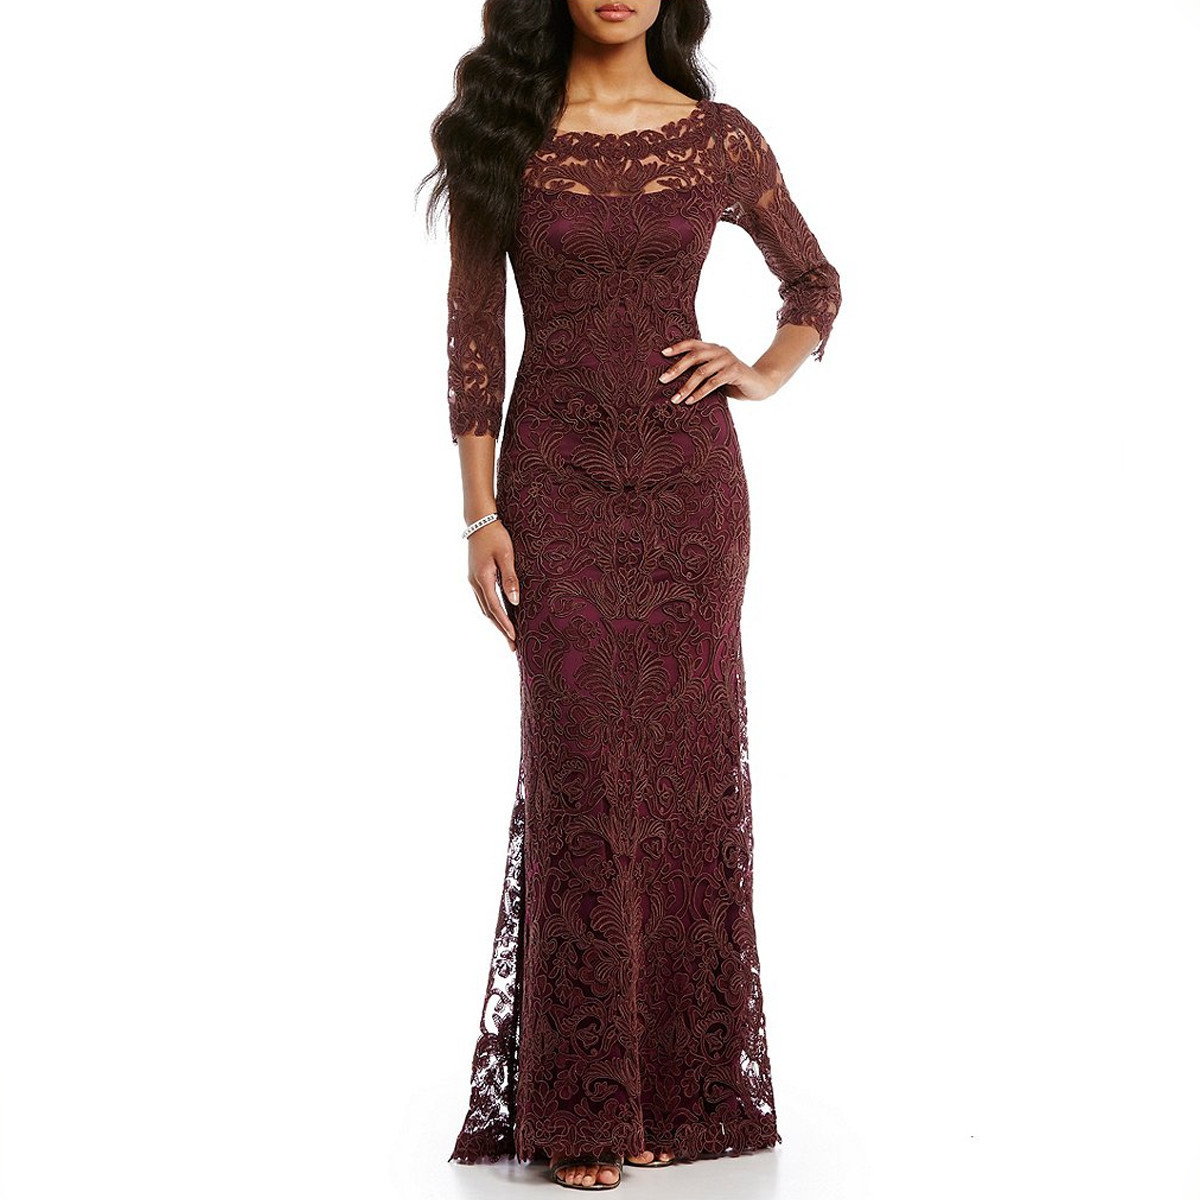 Woman wearing a maroon lace mother of the bride dress photo